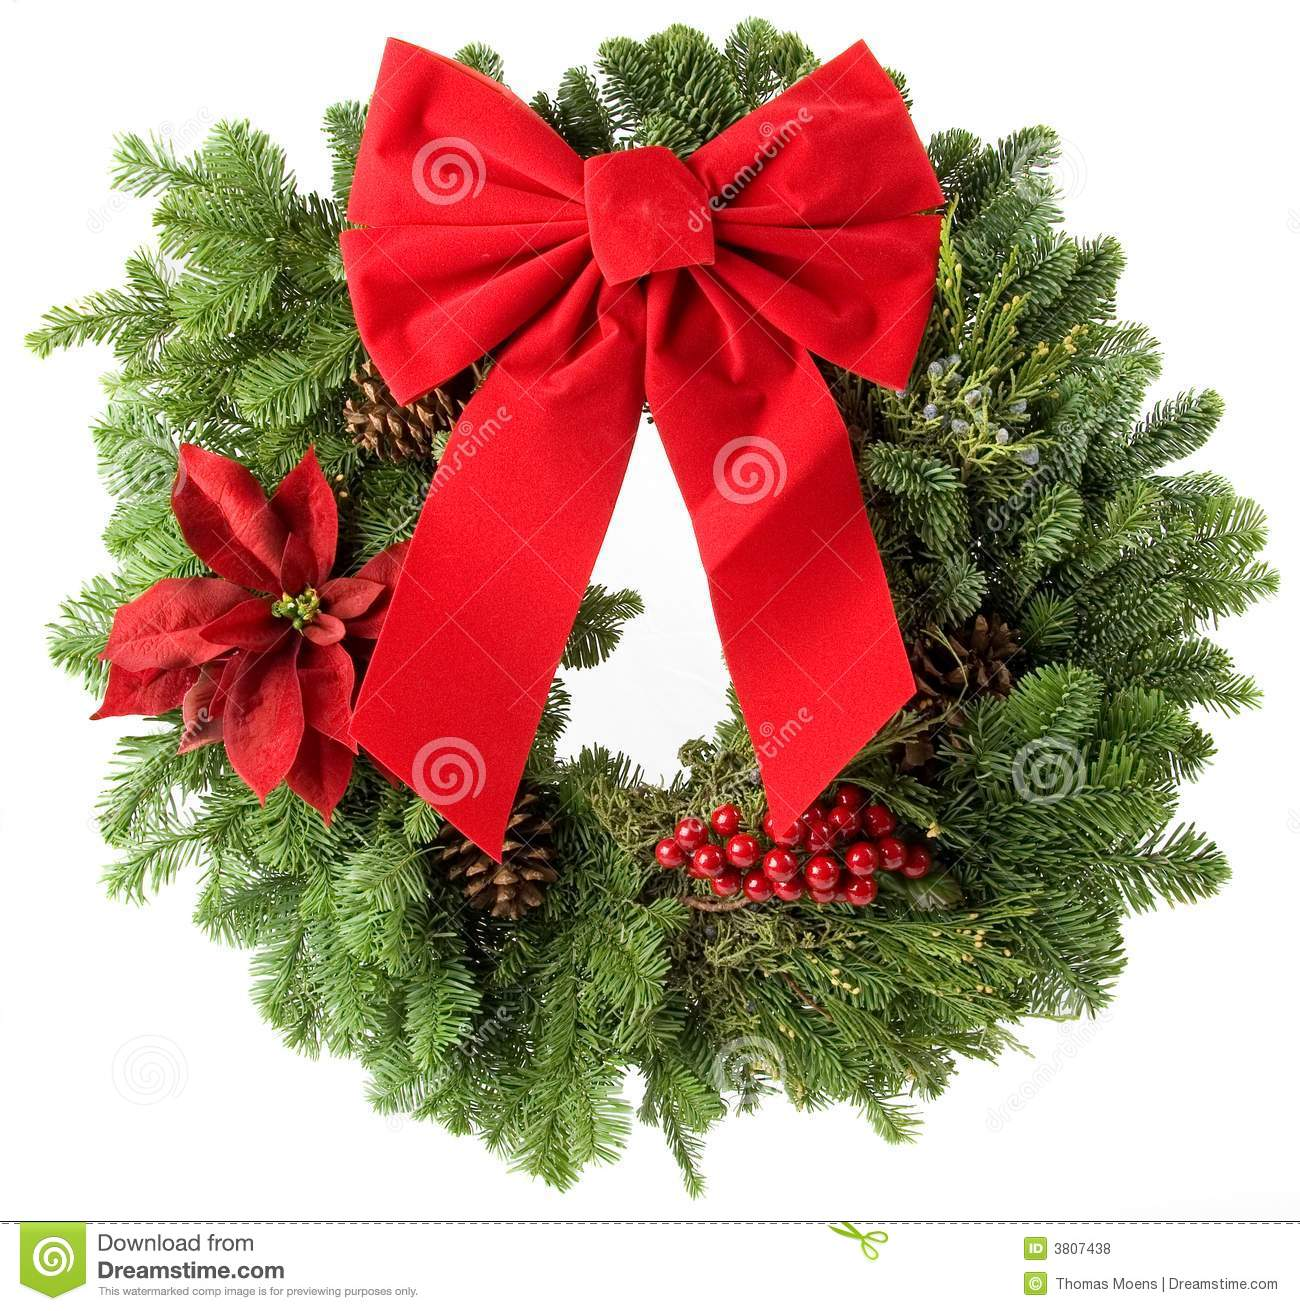 Christmas Wreath Made From Real Pine Boughs Isolated On White